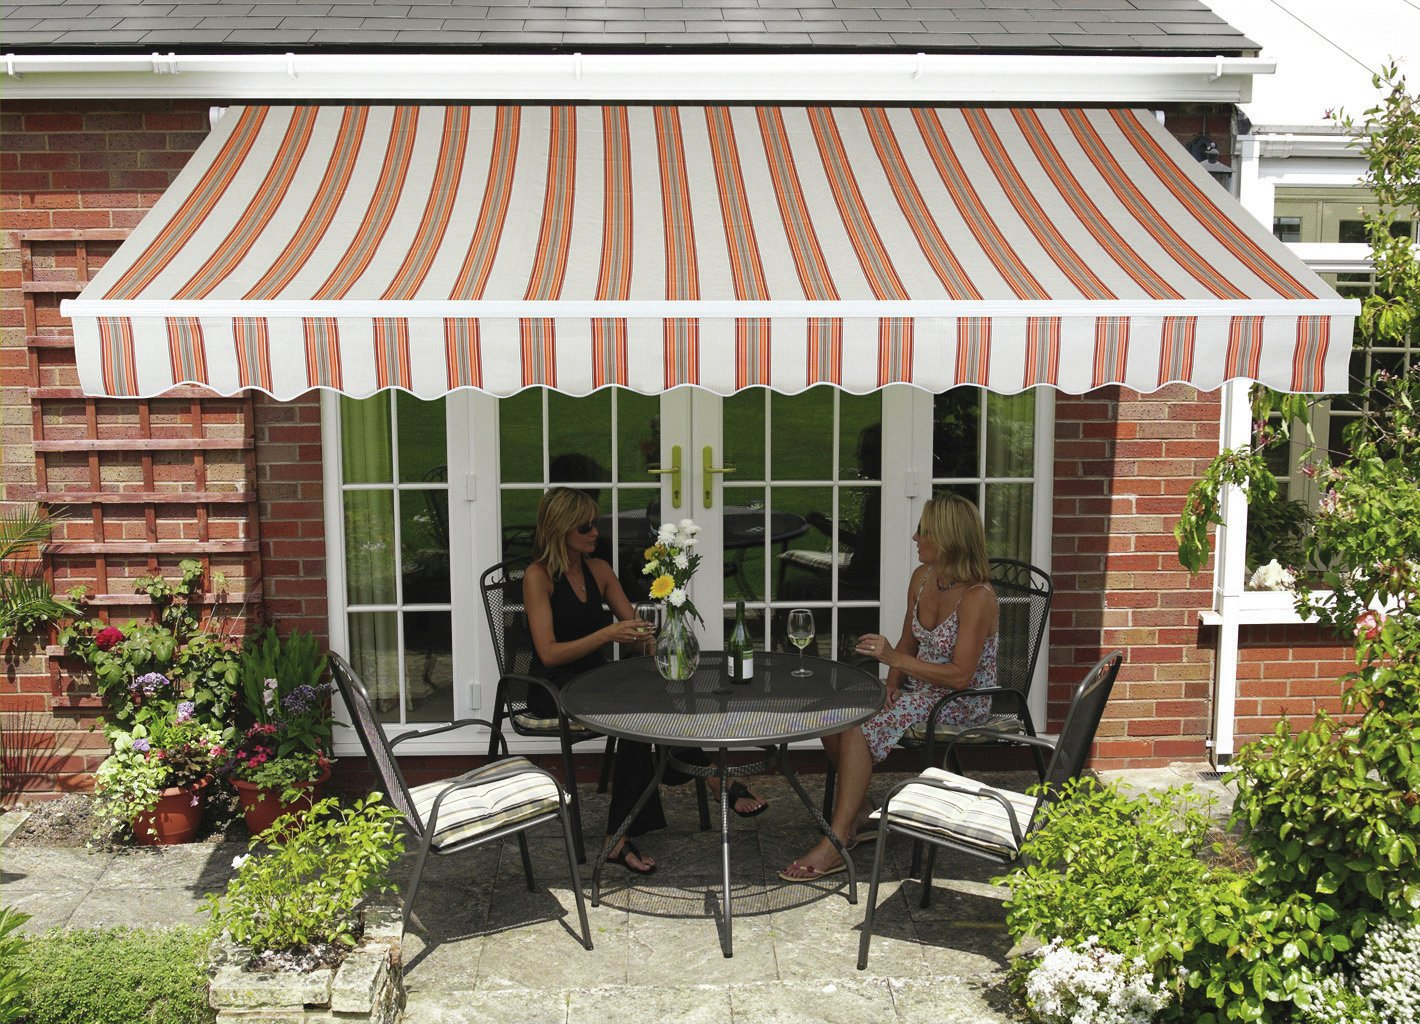 Greenhurst Kingston - Garden Awning - 25m lowest price